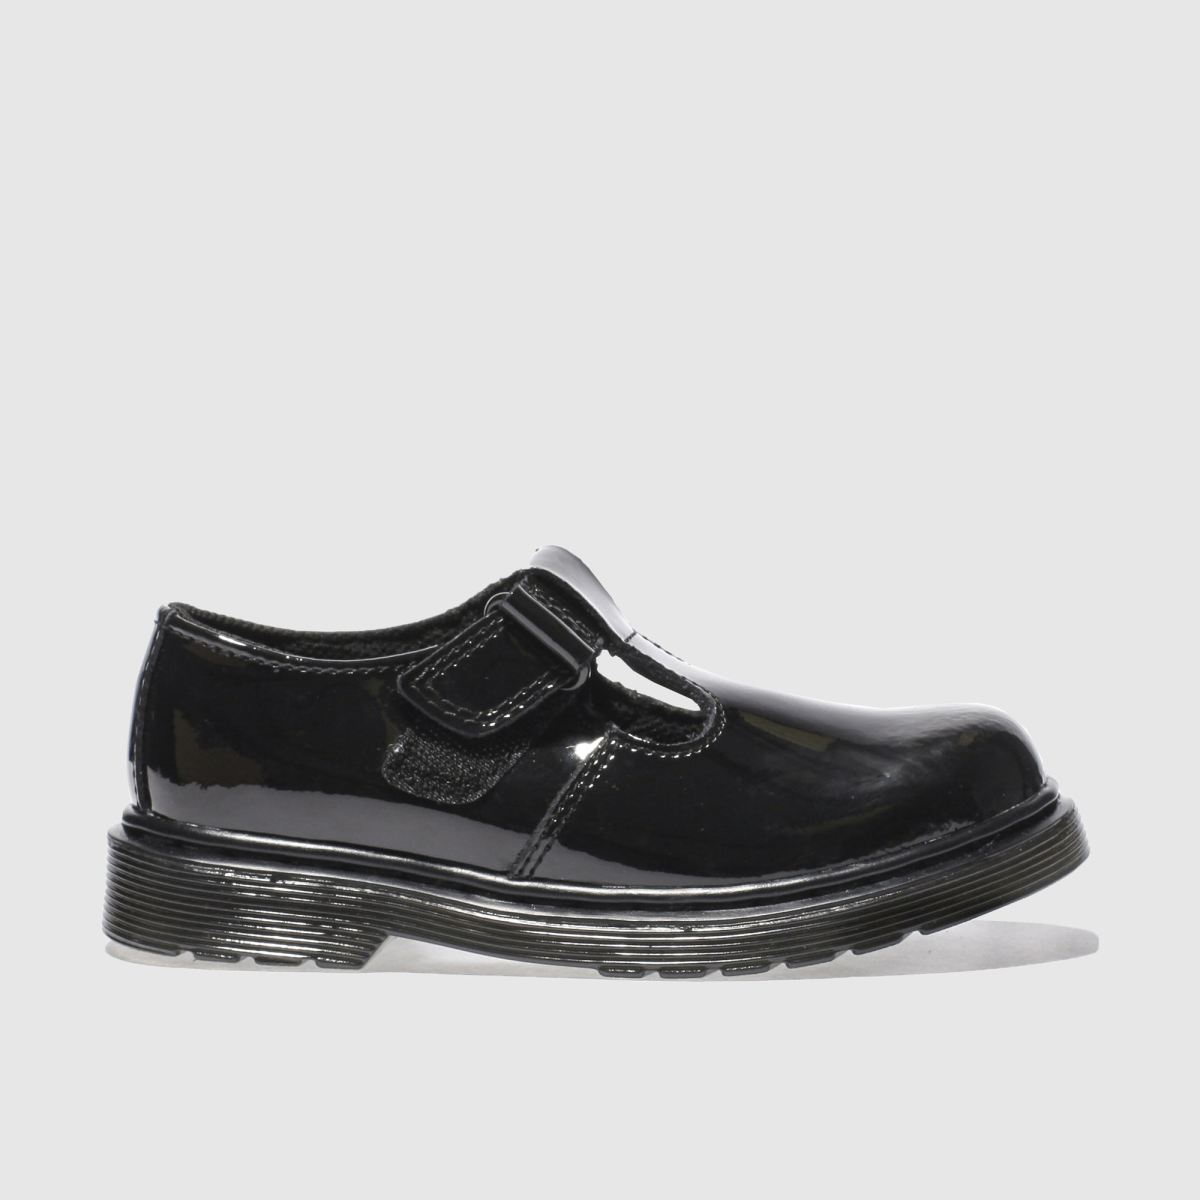 dr martens black goldie t bar Girls Junior Shoes